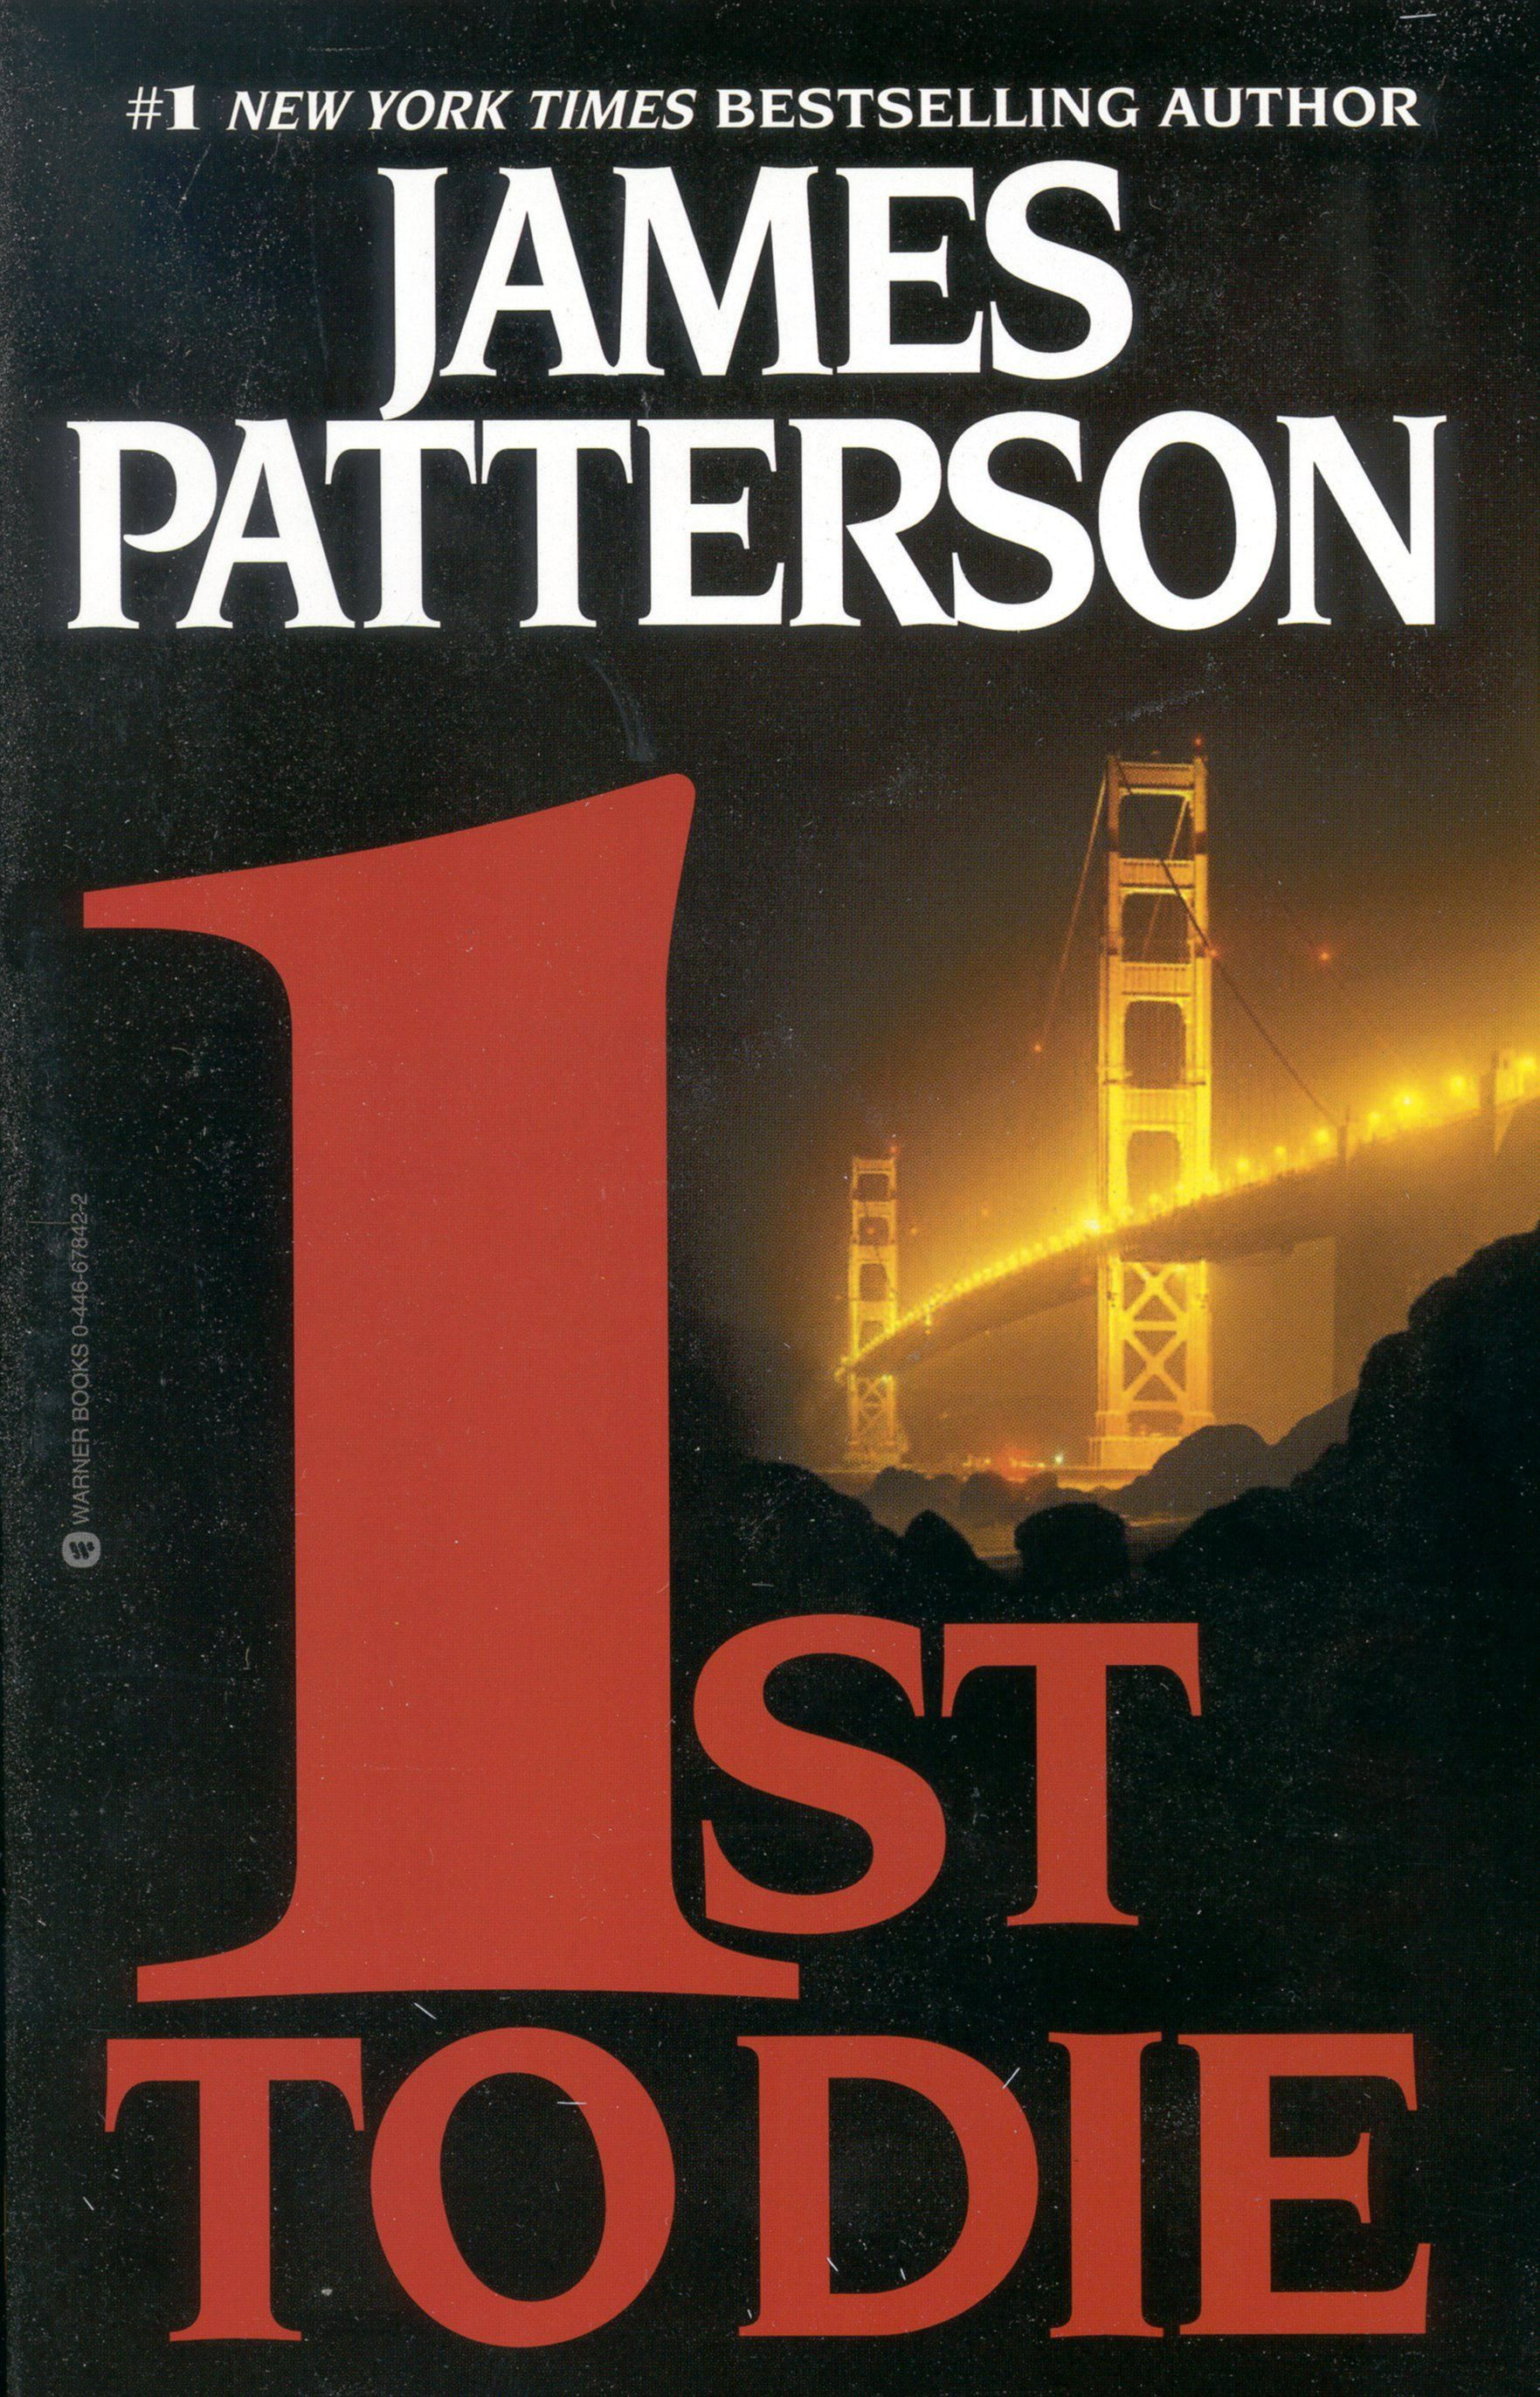 1st To Die, First Book In The Women's Murder Club Series, By James Patterson